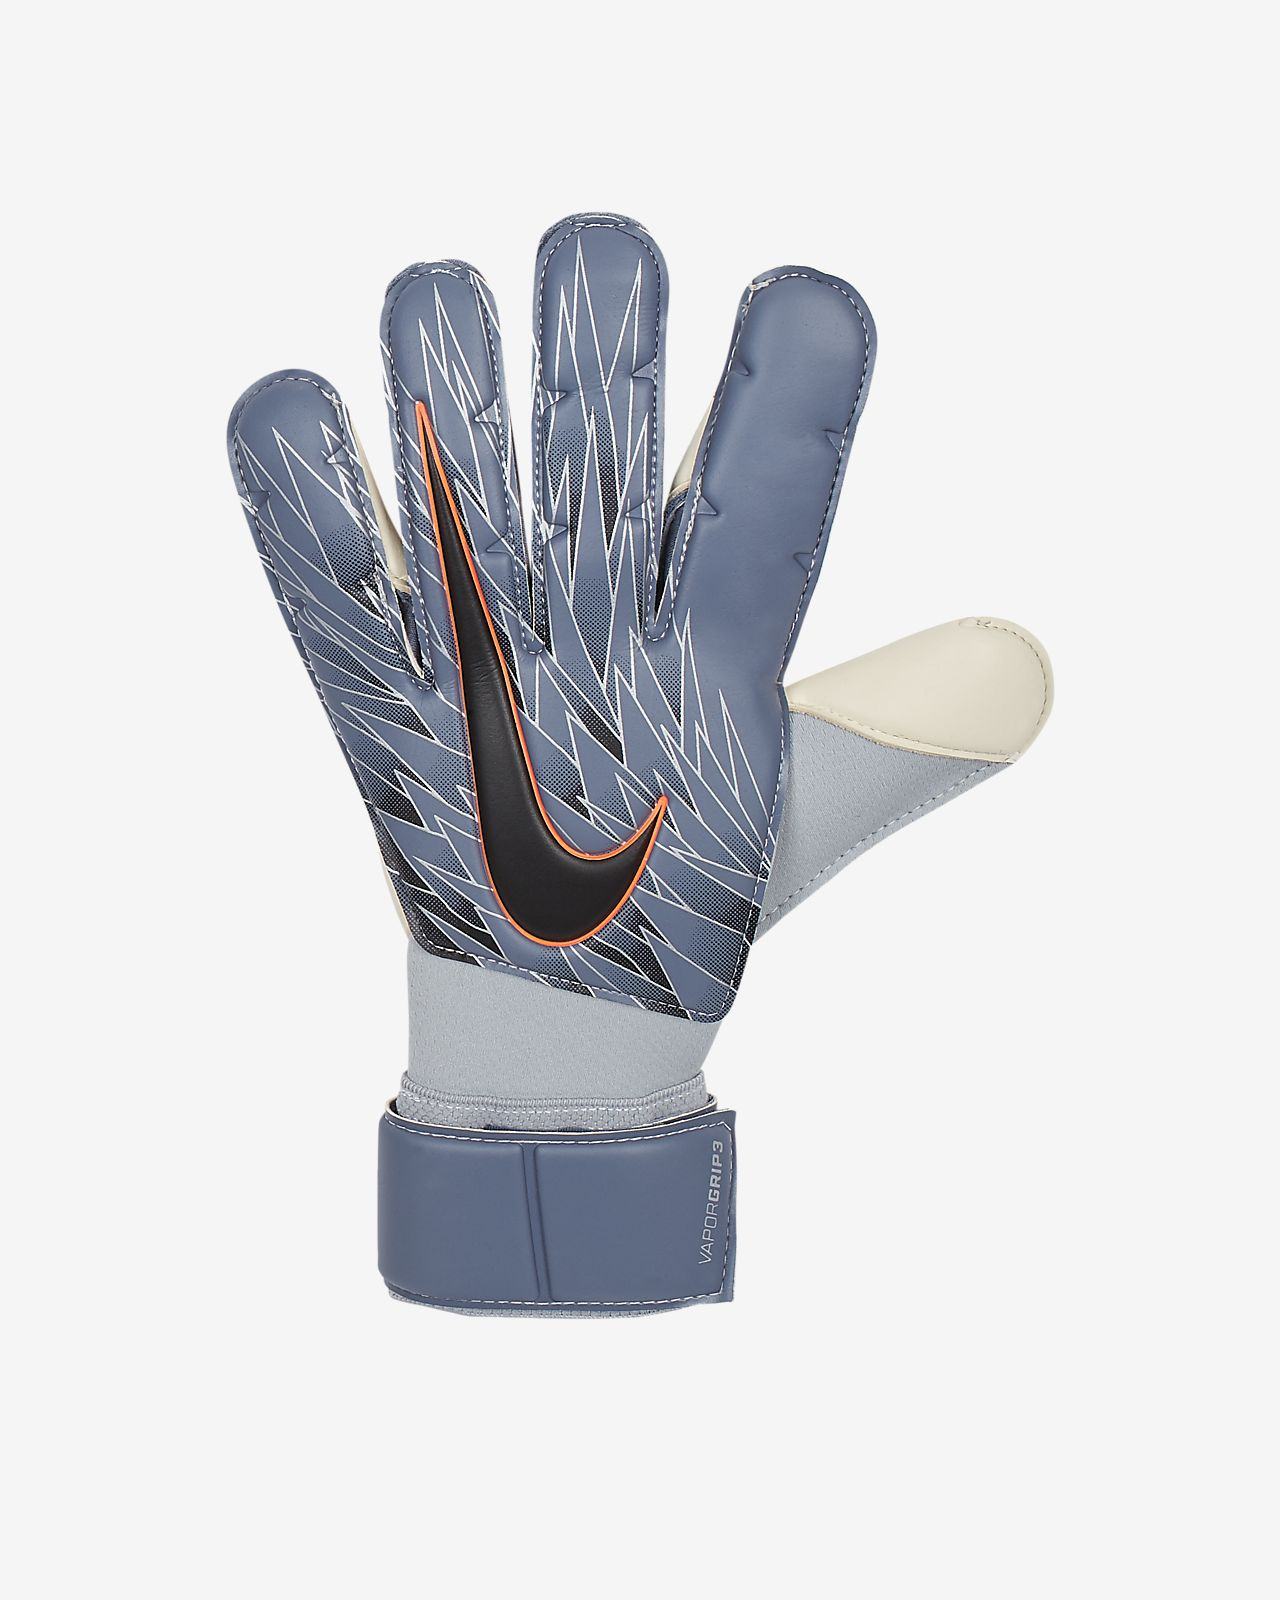 Gants de football Nike Goalkeeper Vapor Grip3